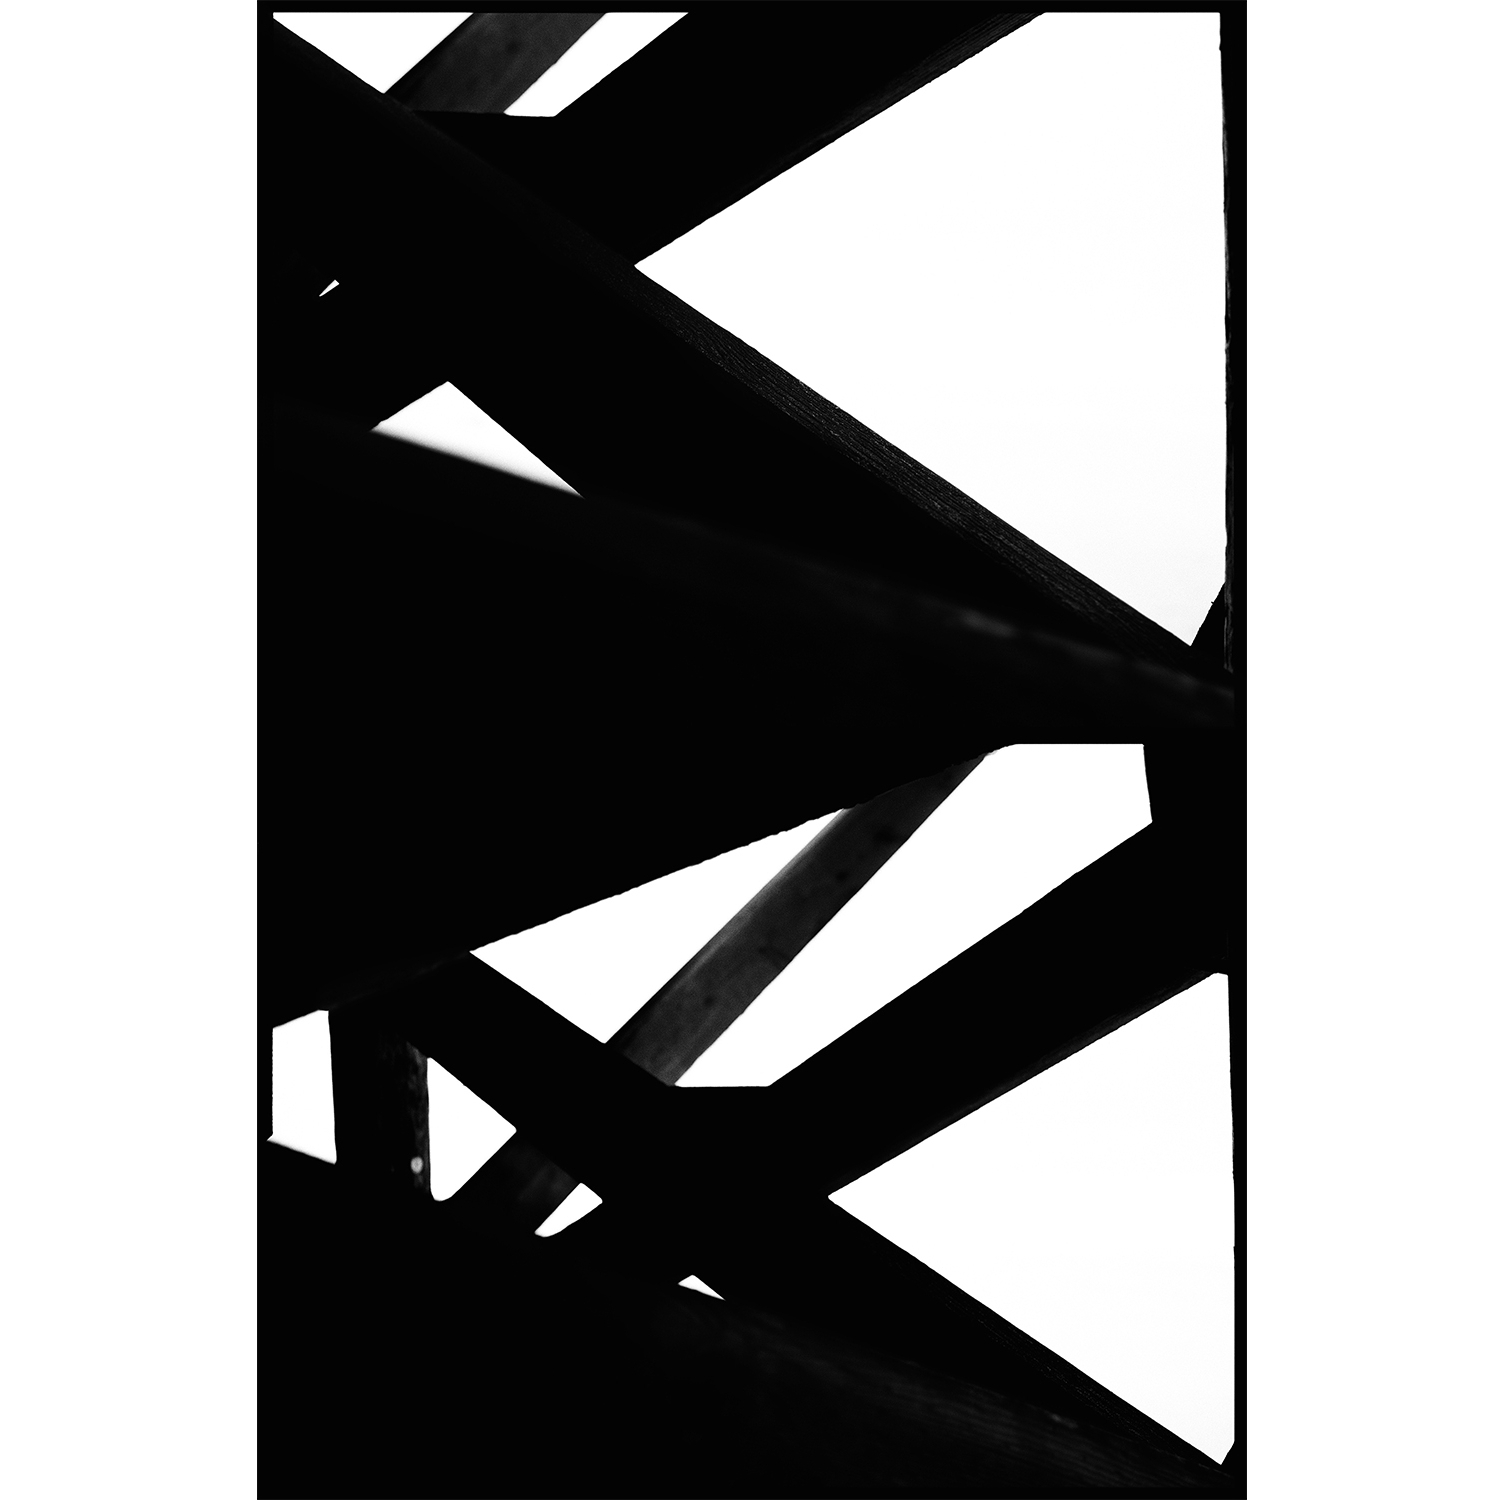 Untitled #25   (Nowhere)  , 2012/ archival pigment   print,  38 5/8 x 25 7/8  inches  ,  edition of 3 plus 2 AP